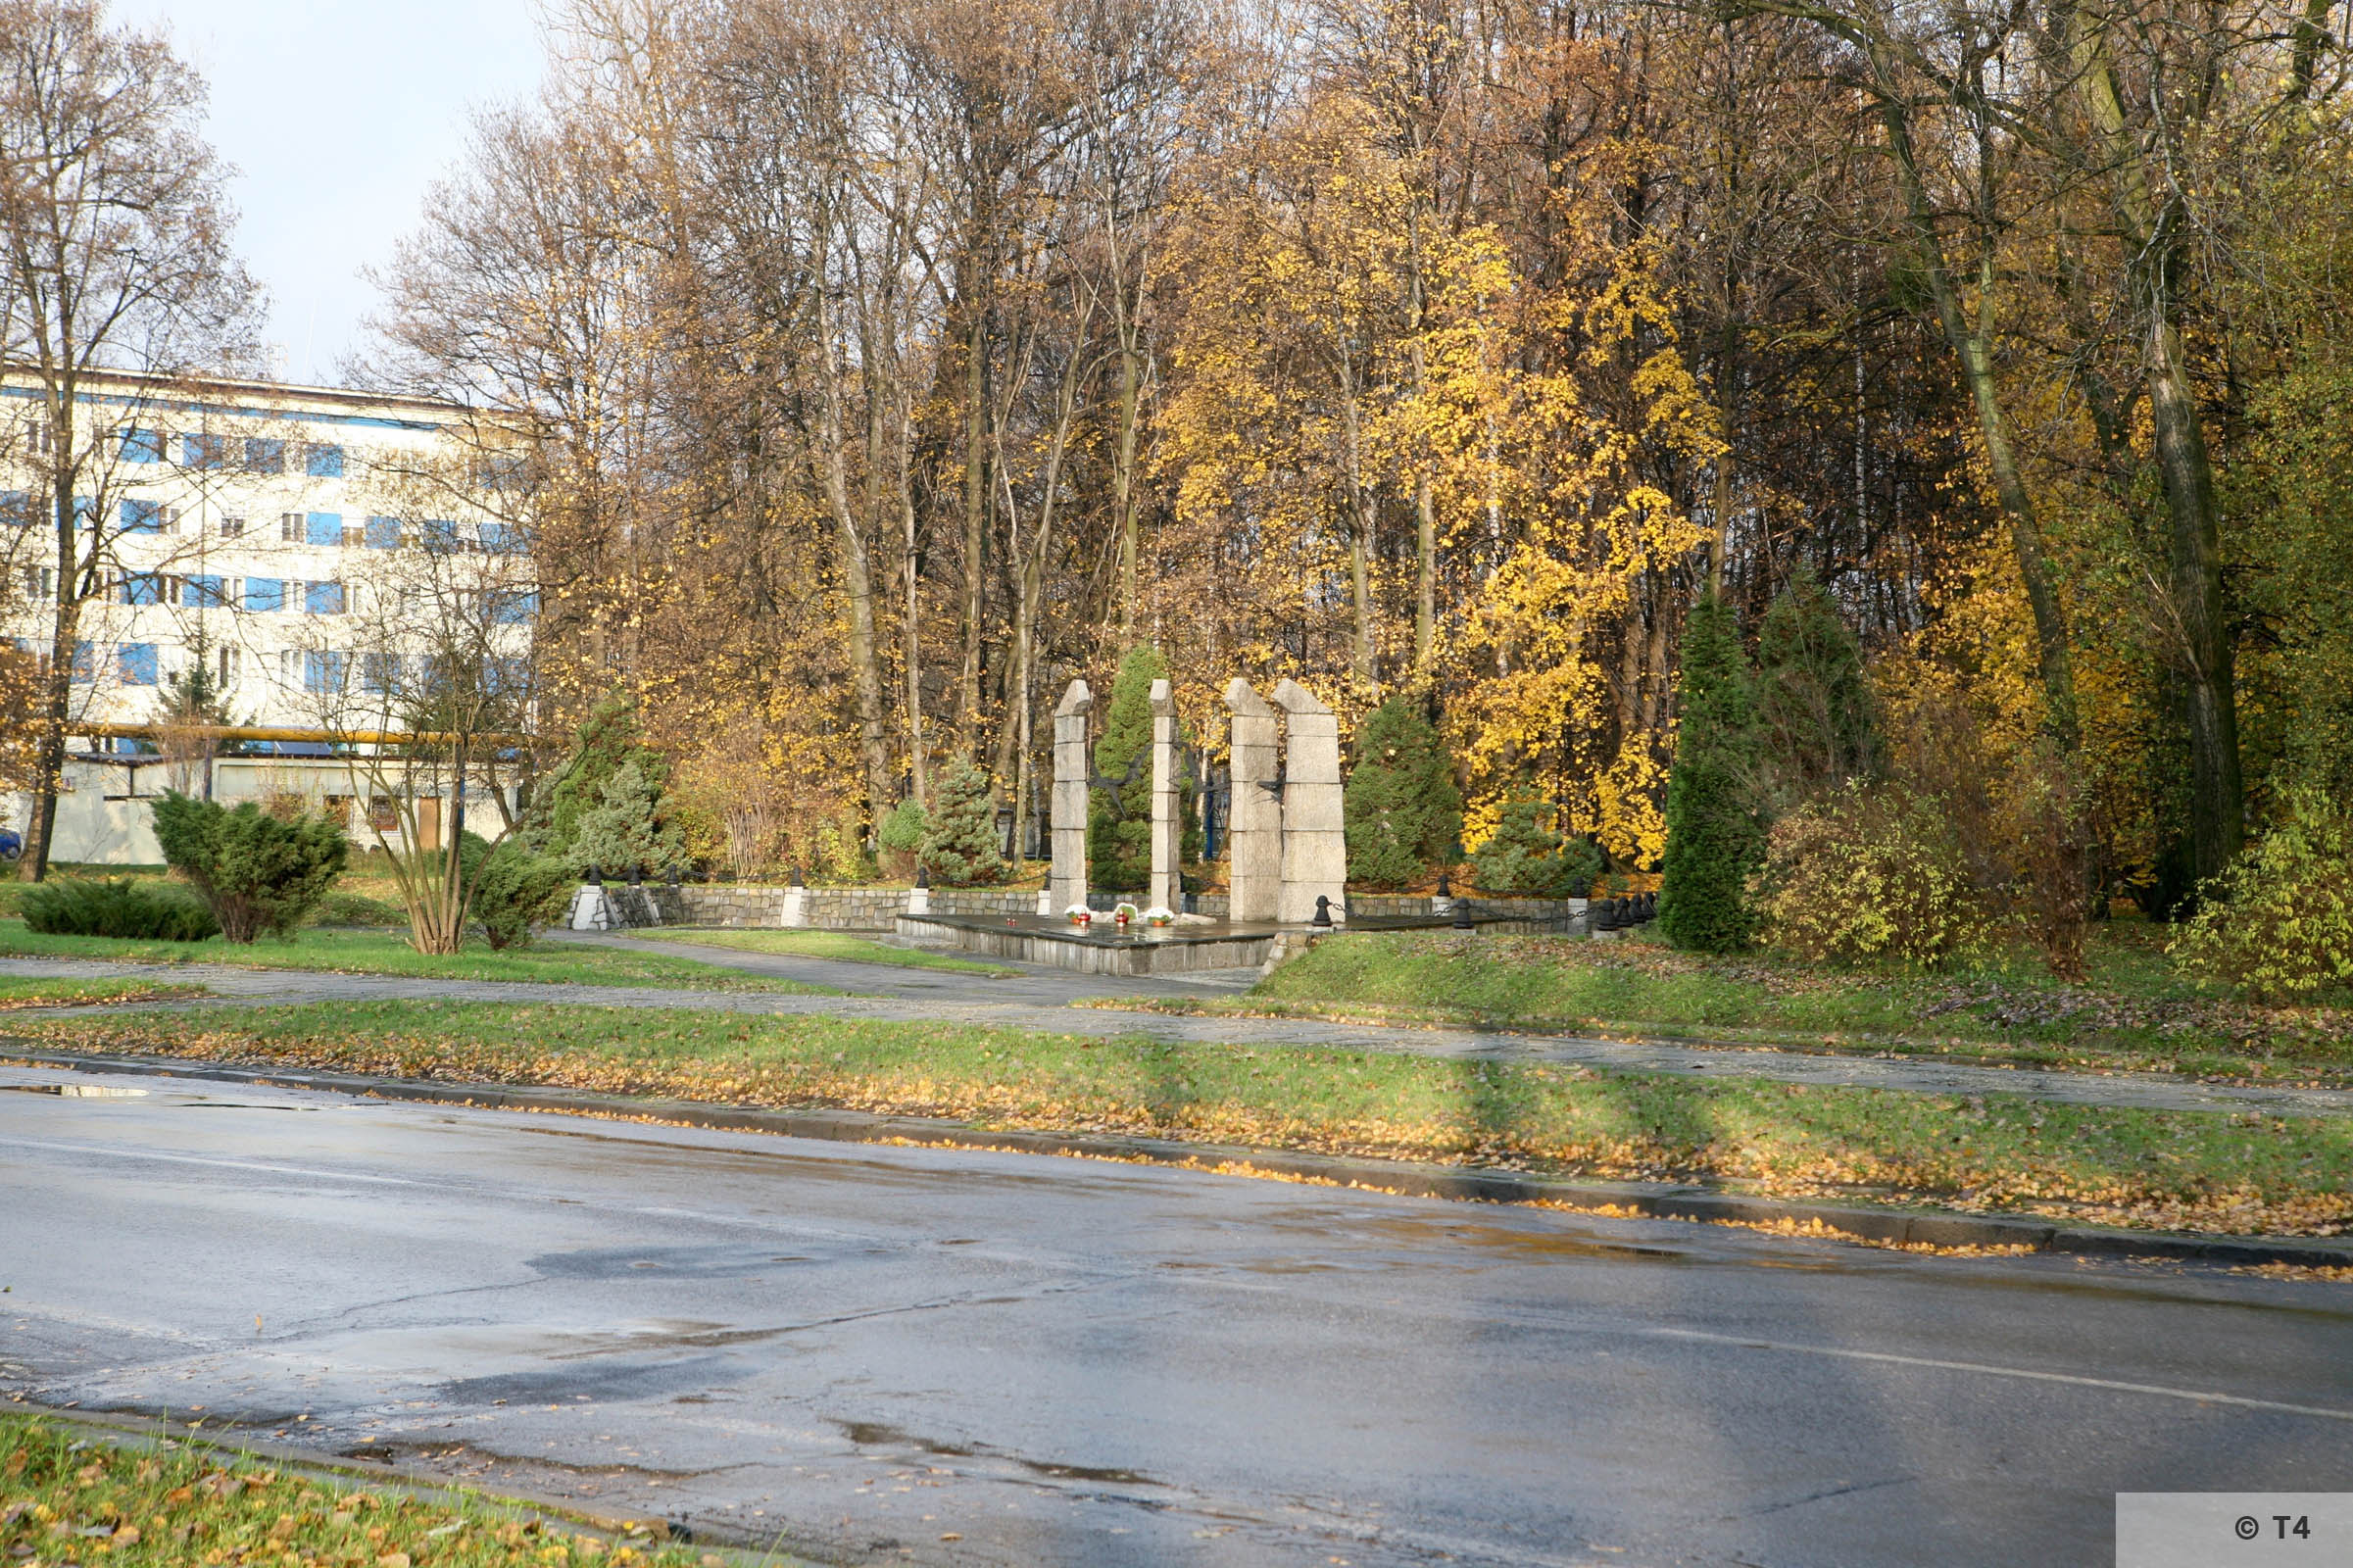 Memorial to former Monowitz prisoners at ul Chemikow near the former IG Farben Buna plant. 2008 T4 3174